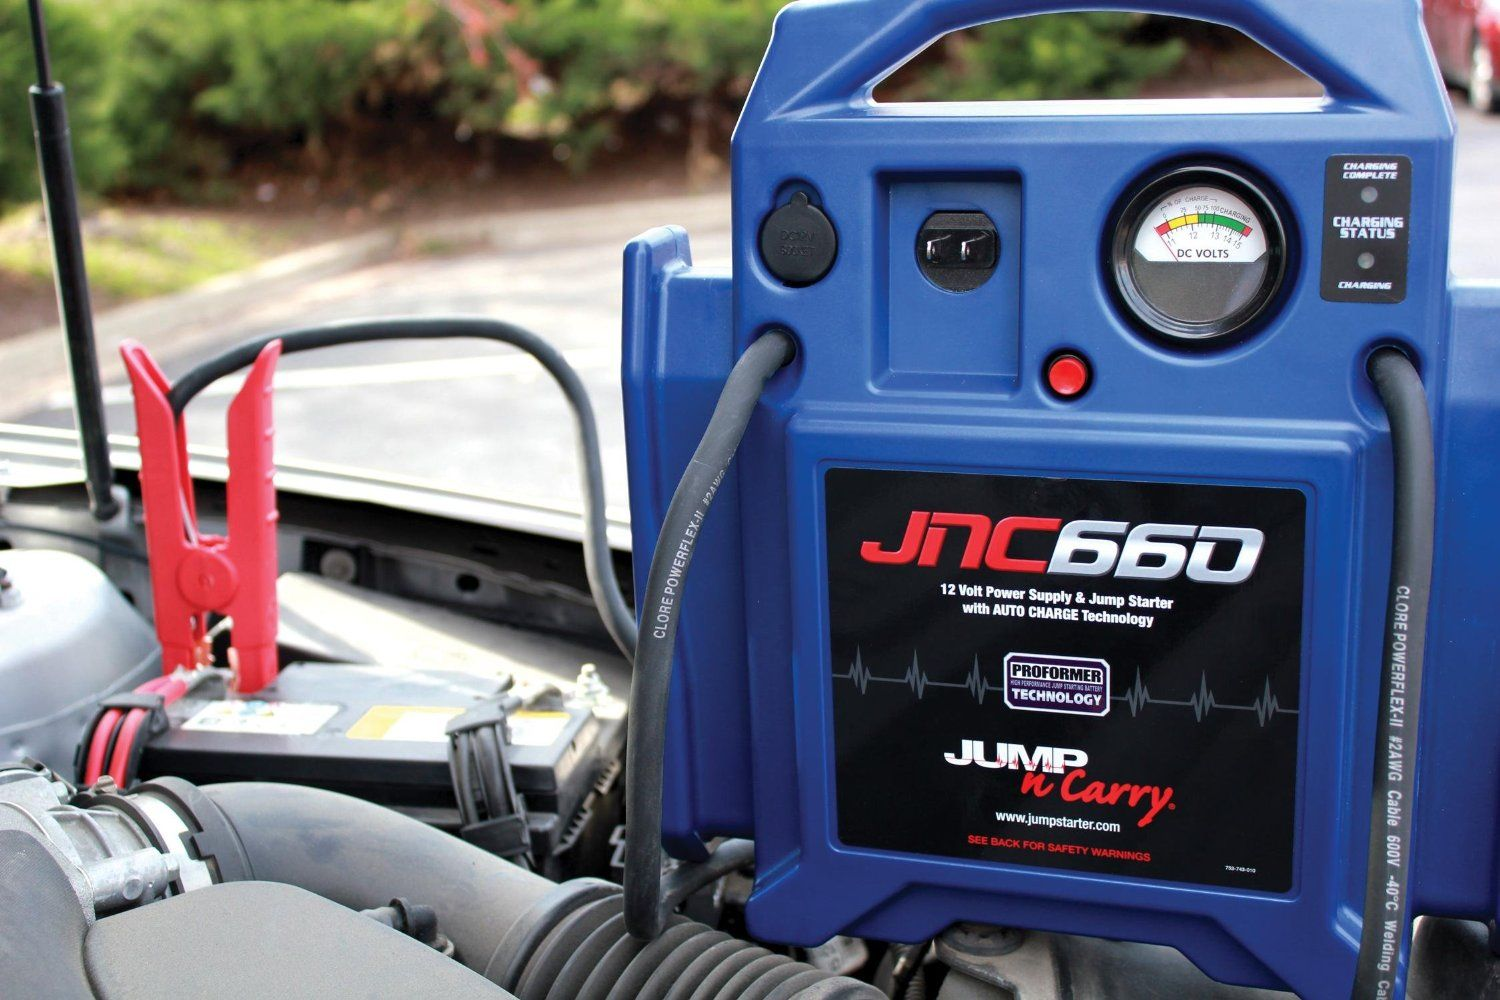 Jump N Carry Jnc660 >> JNC660 Heavy Duty Jump Starter in United States